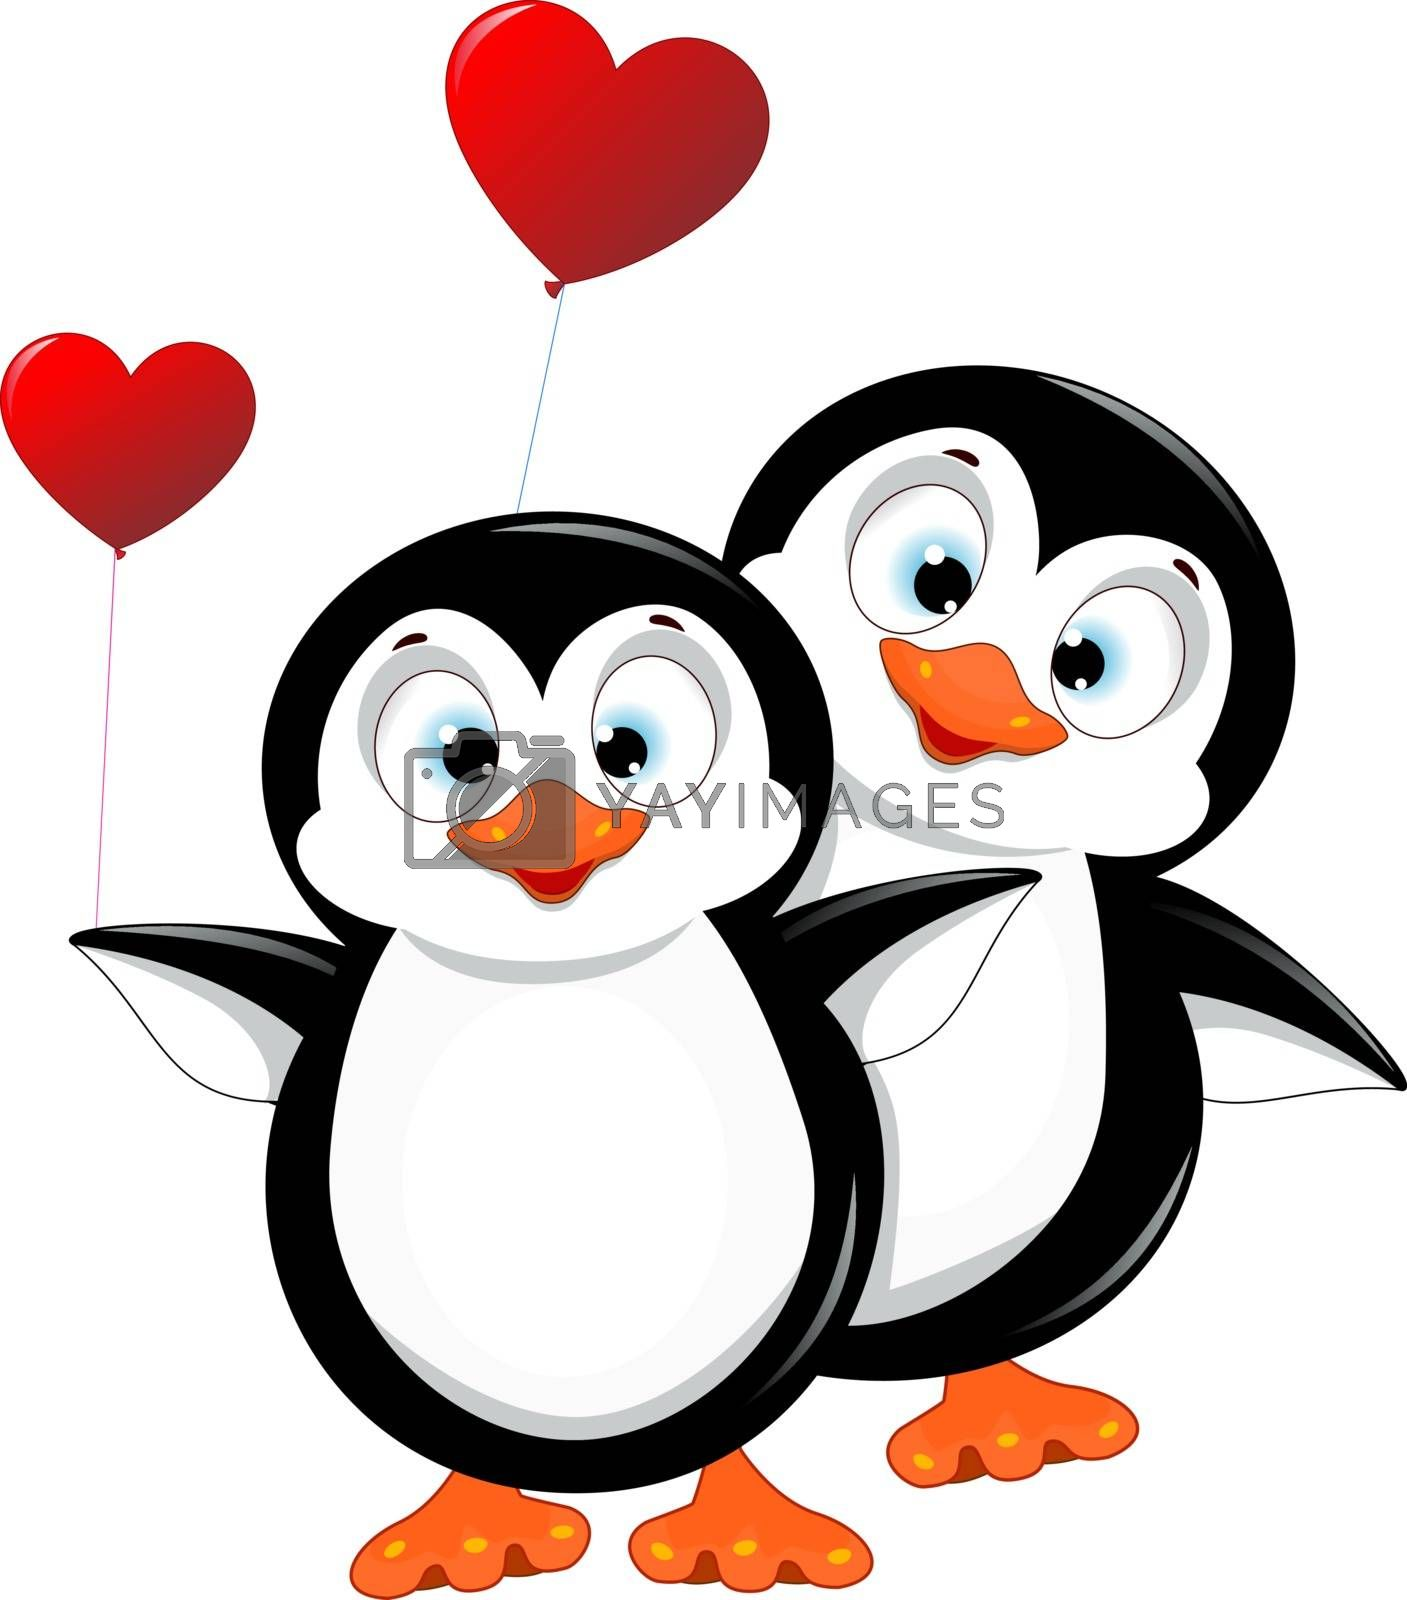 Two penguins with heart shaped balloons. Penguins on a white background. Little penguins.